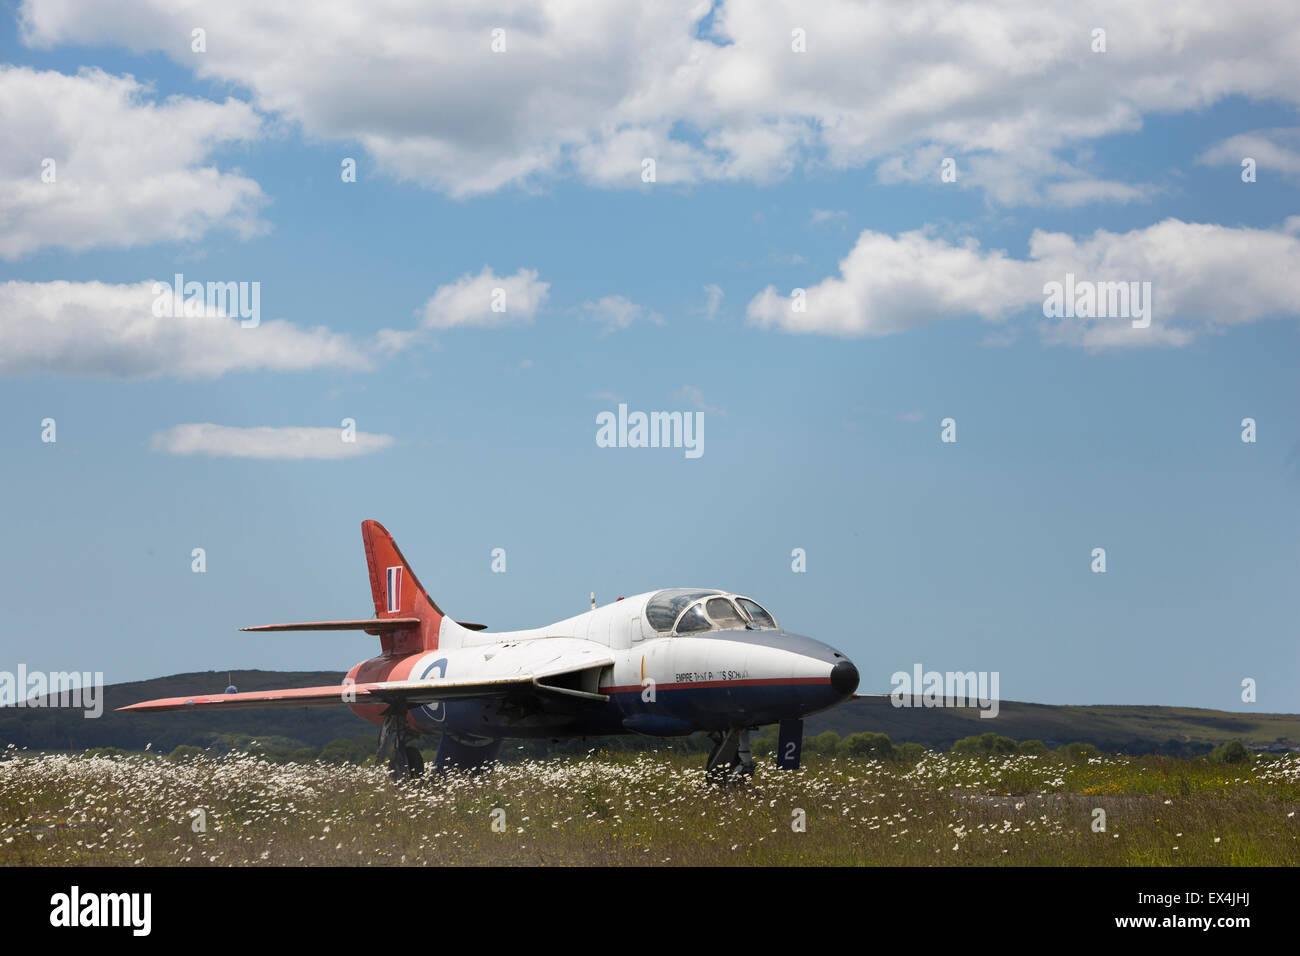 Hawker Hunter, serial number XL612, at Swansea Airport.  First flew 1958. - Stock Image